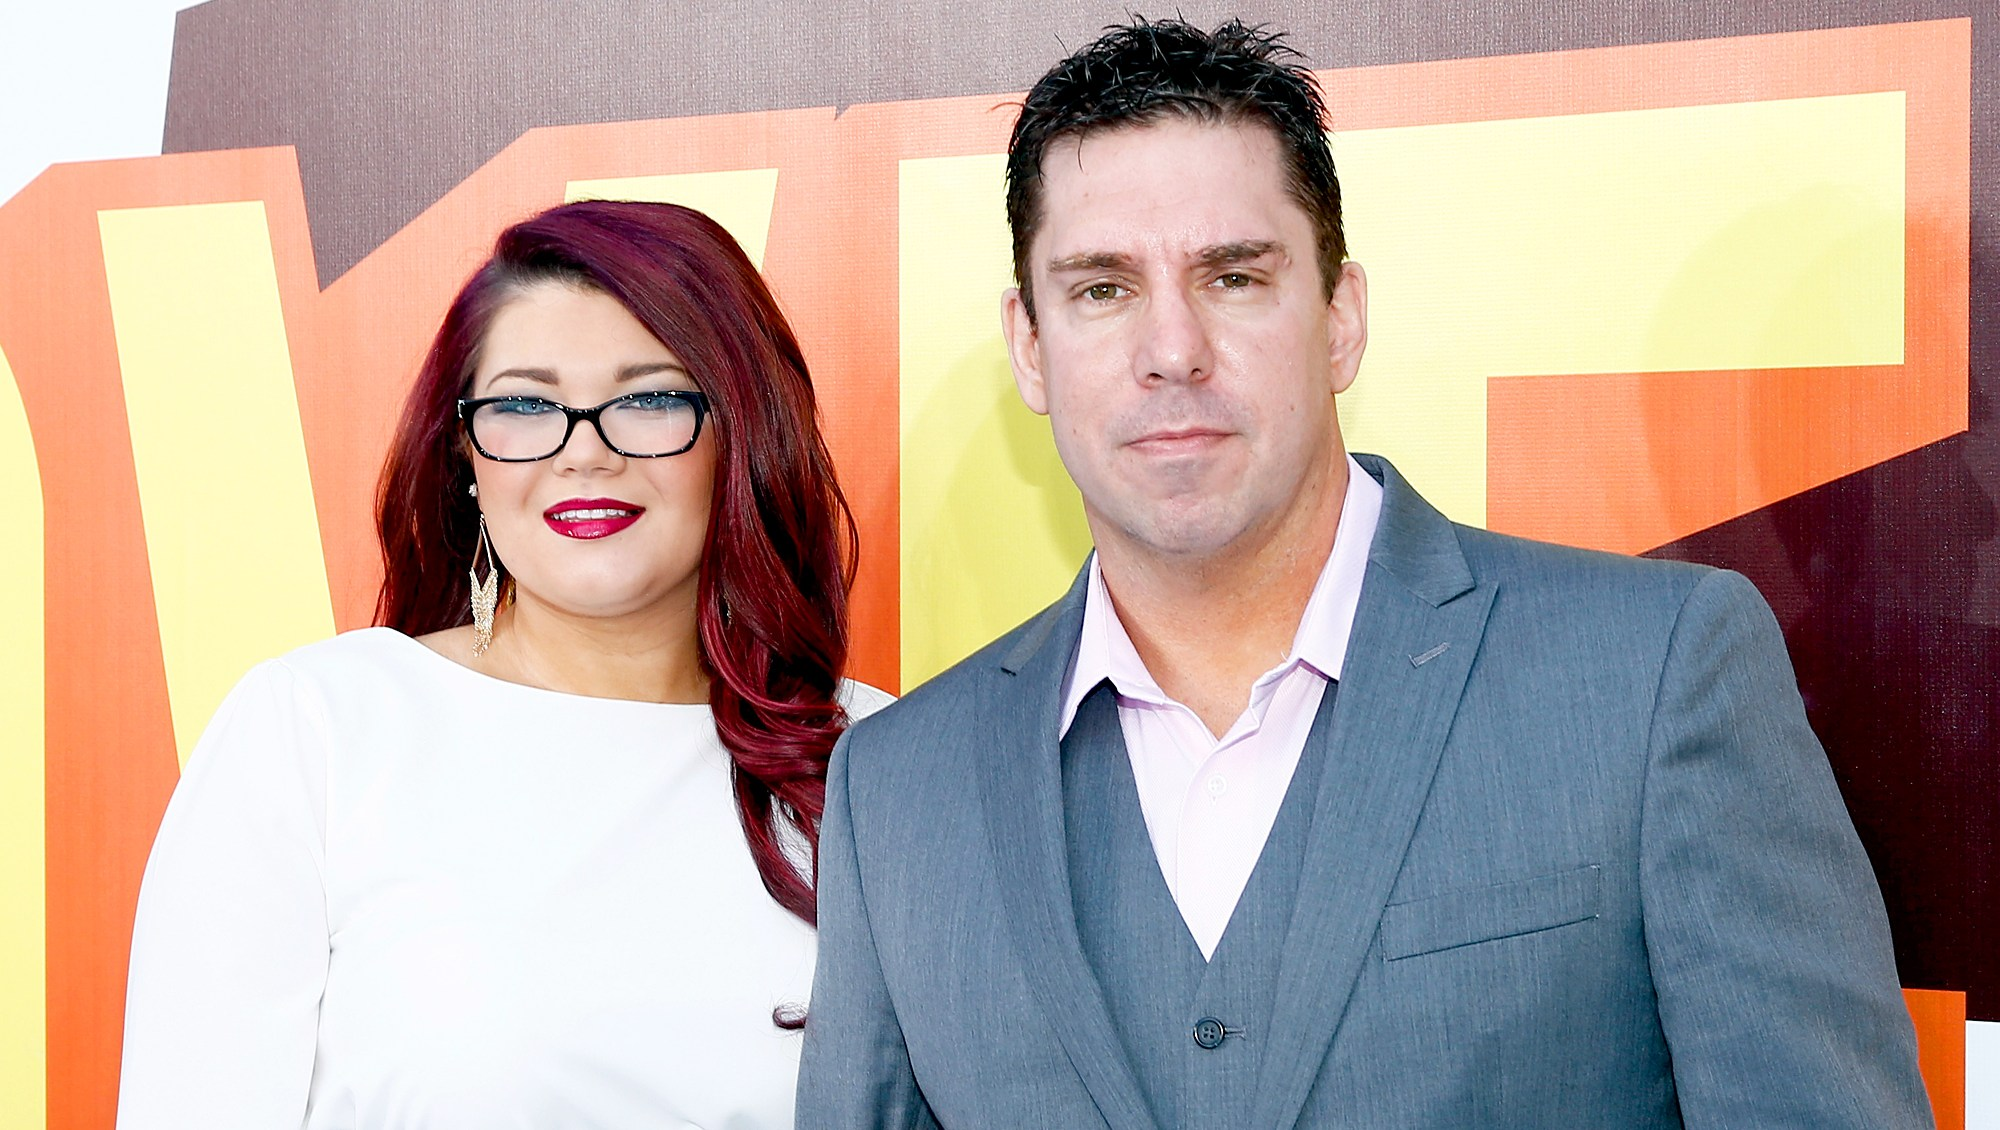 Amber Portwood and Matt Baier attend The 2015 MTV Movie Awards at Nokia Theatre L.A. Live in Los Angeles, California.